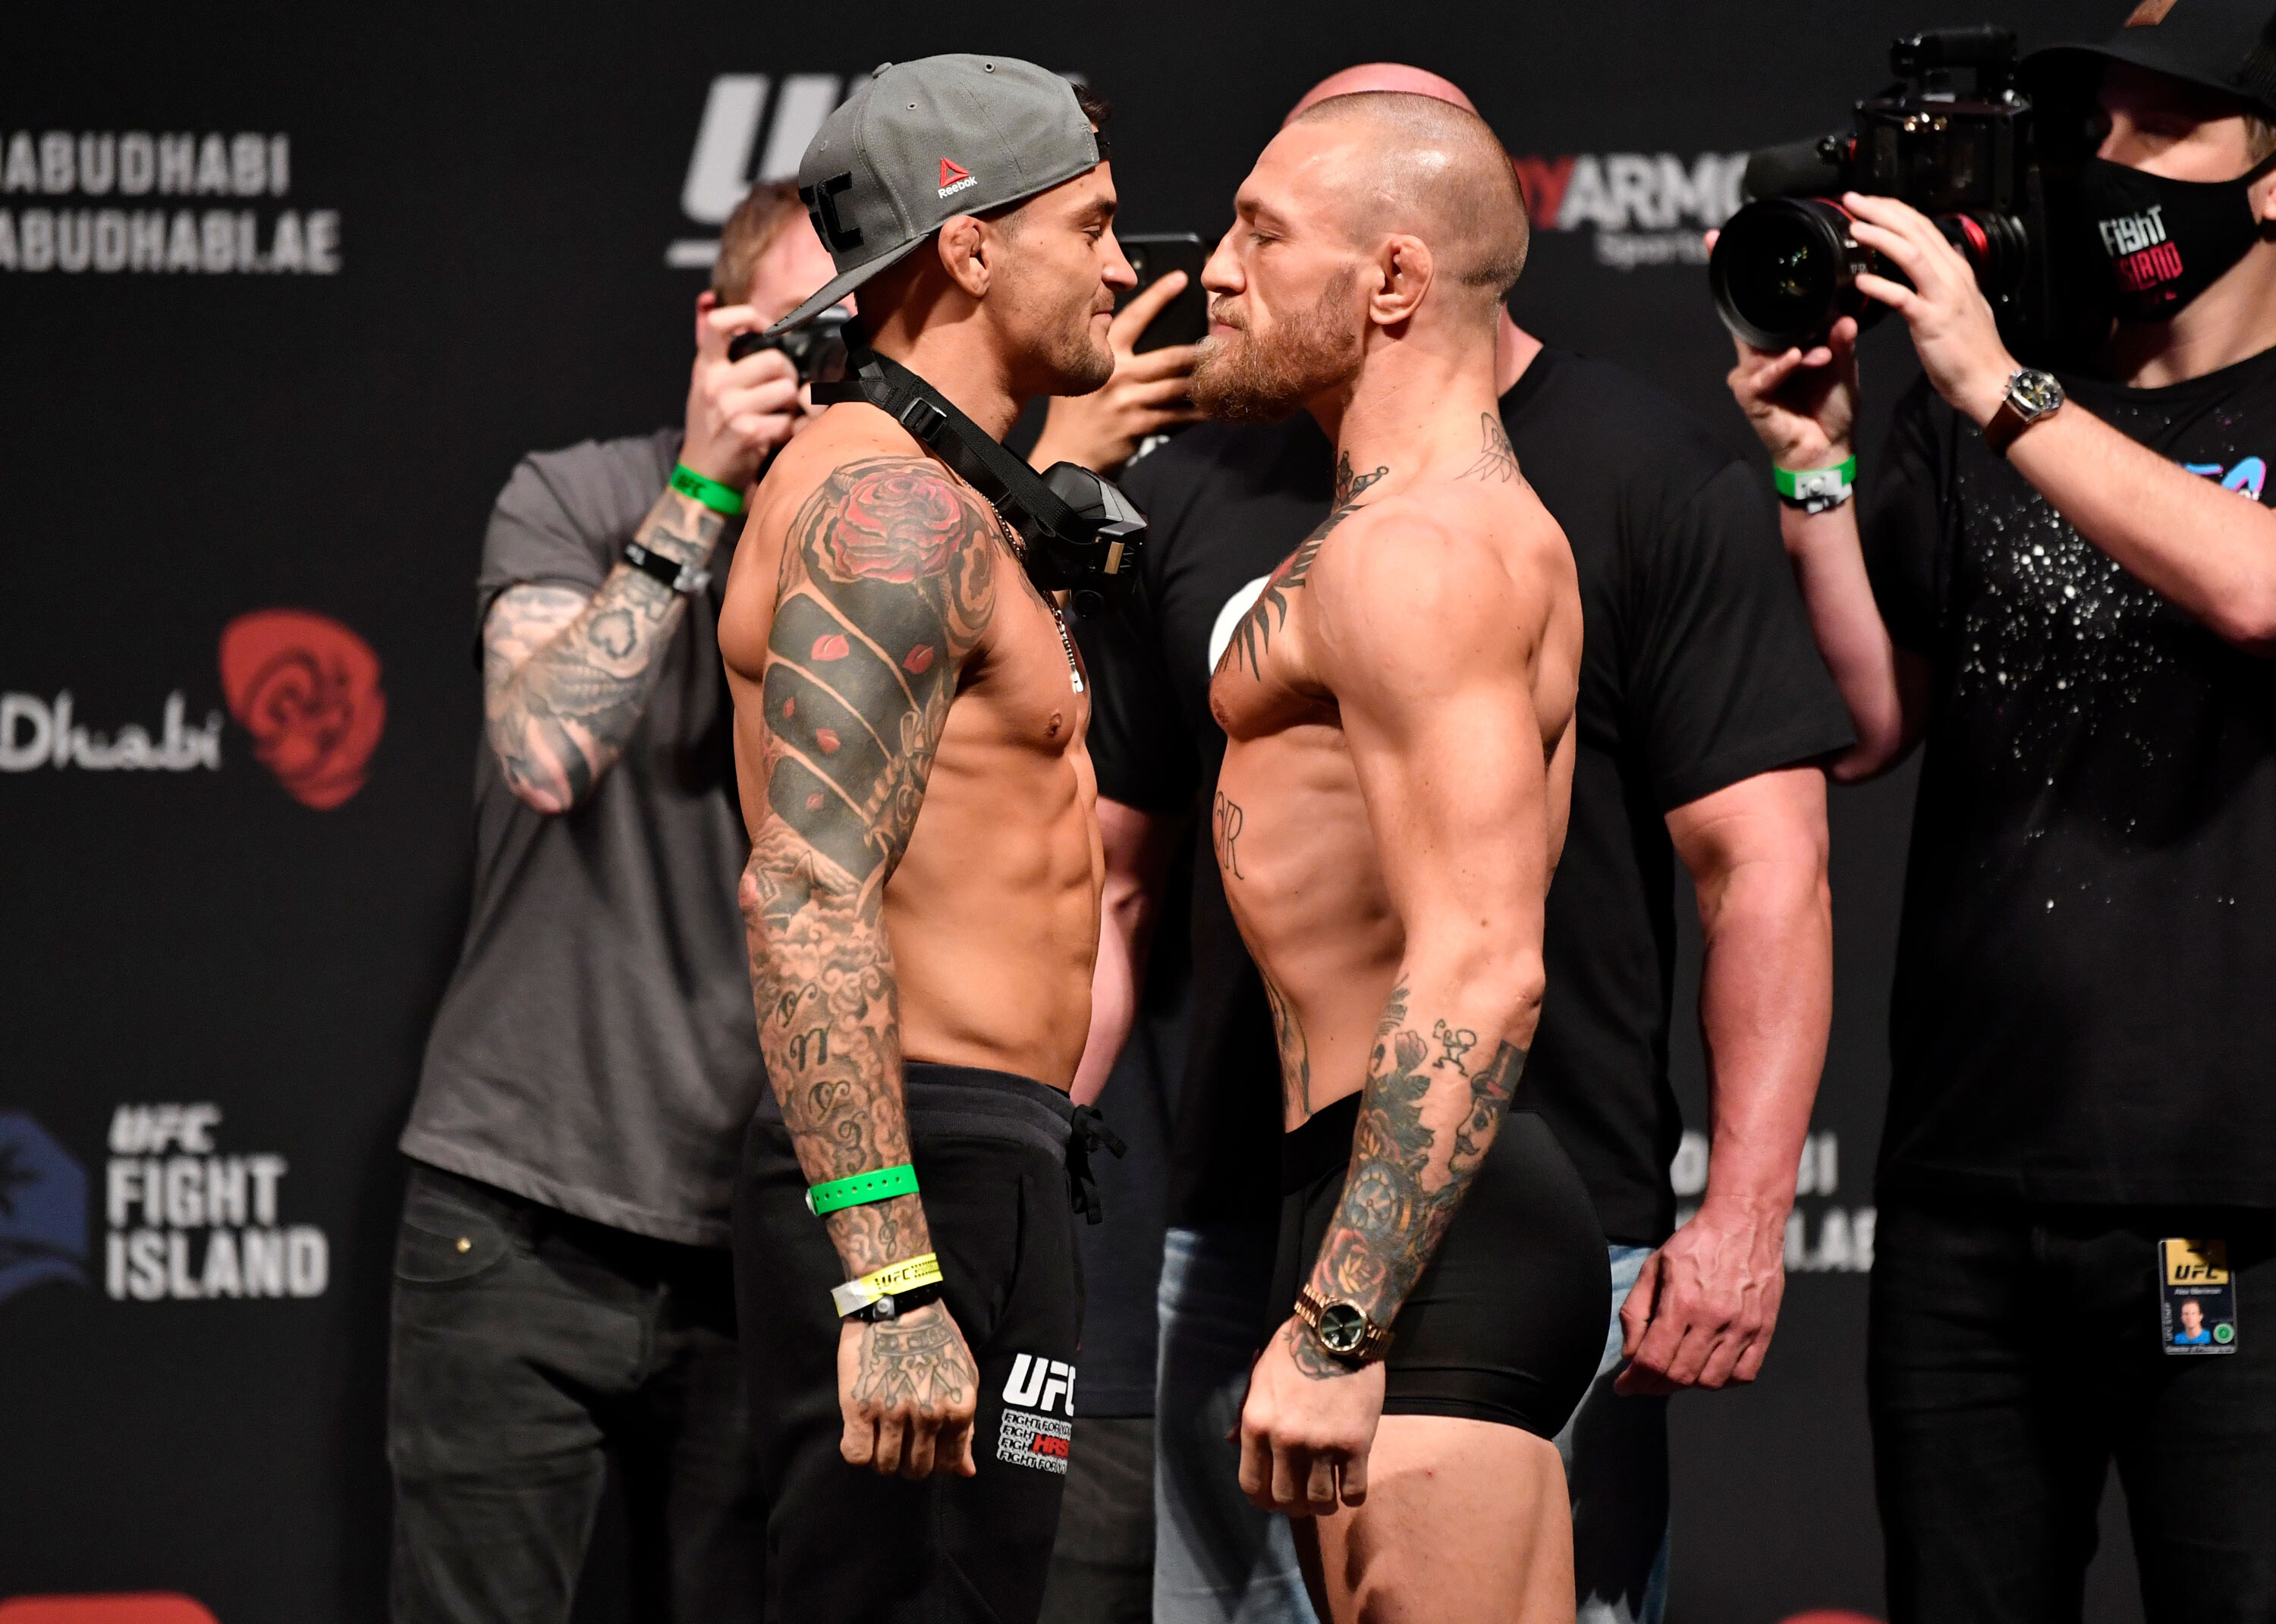 Conor McGregor vs. Dustin Poirier: How to watch and what to know